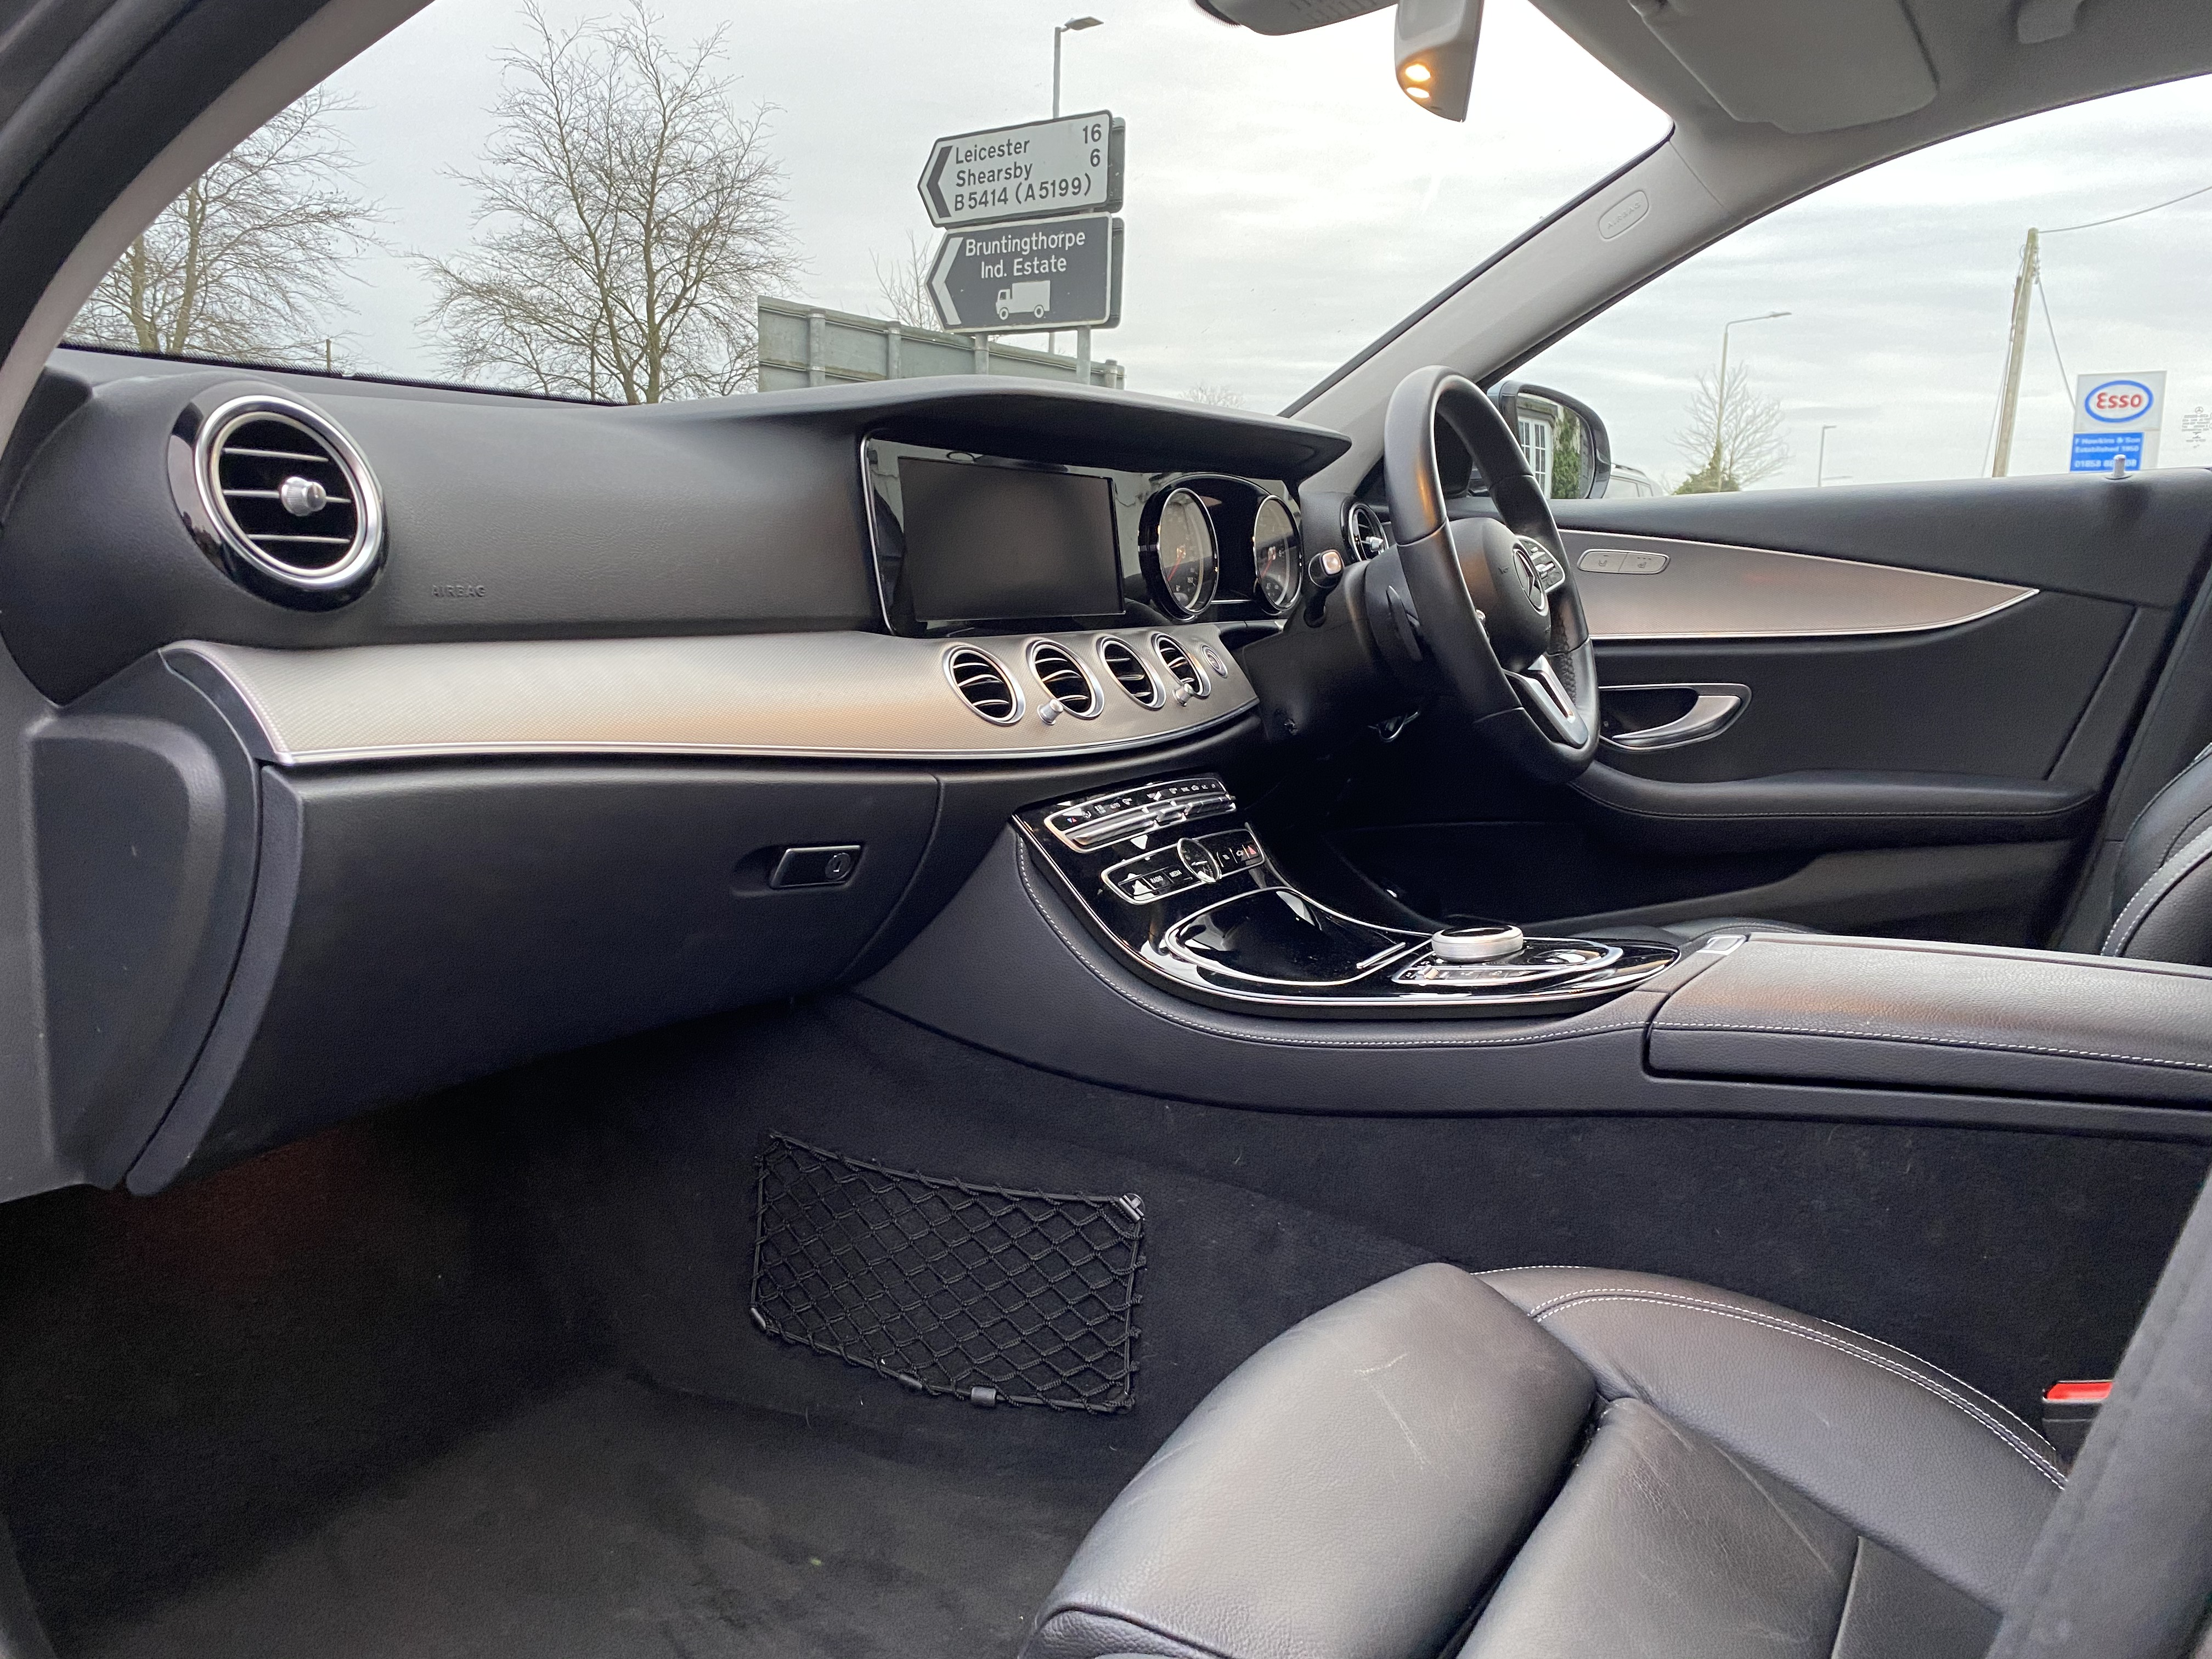 """ON SALE MERCEDES E220d """"SPECIAL EQUIPMENT"""" 9G-TRONIC (2019 MODEL) *GREAT SPEC*SAT NAV - LEATHER - Image 16 of 26"""